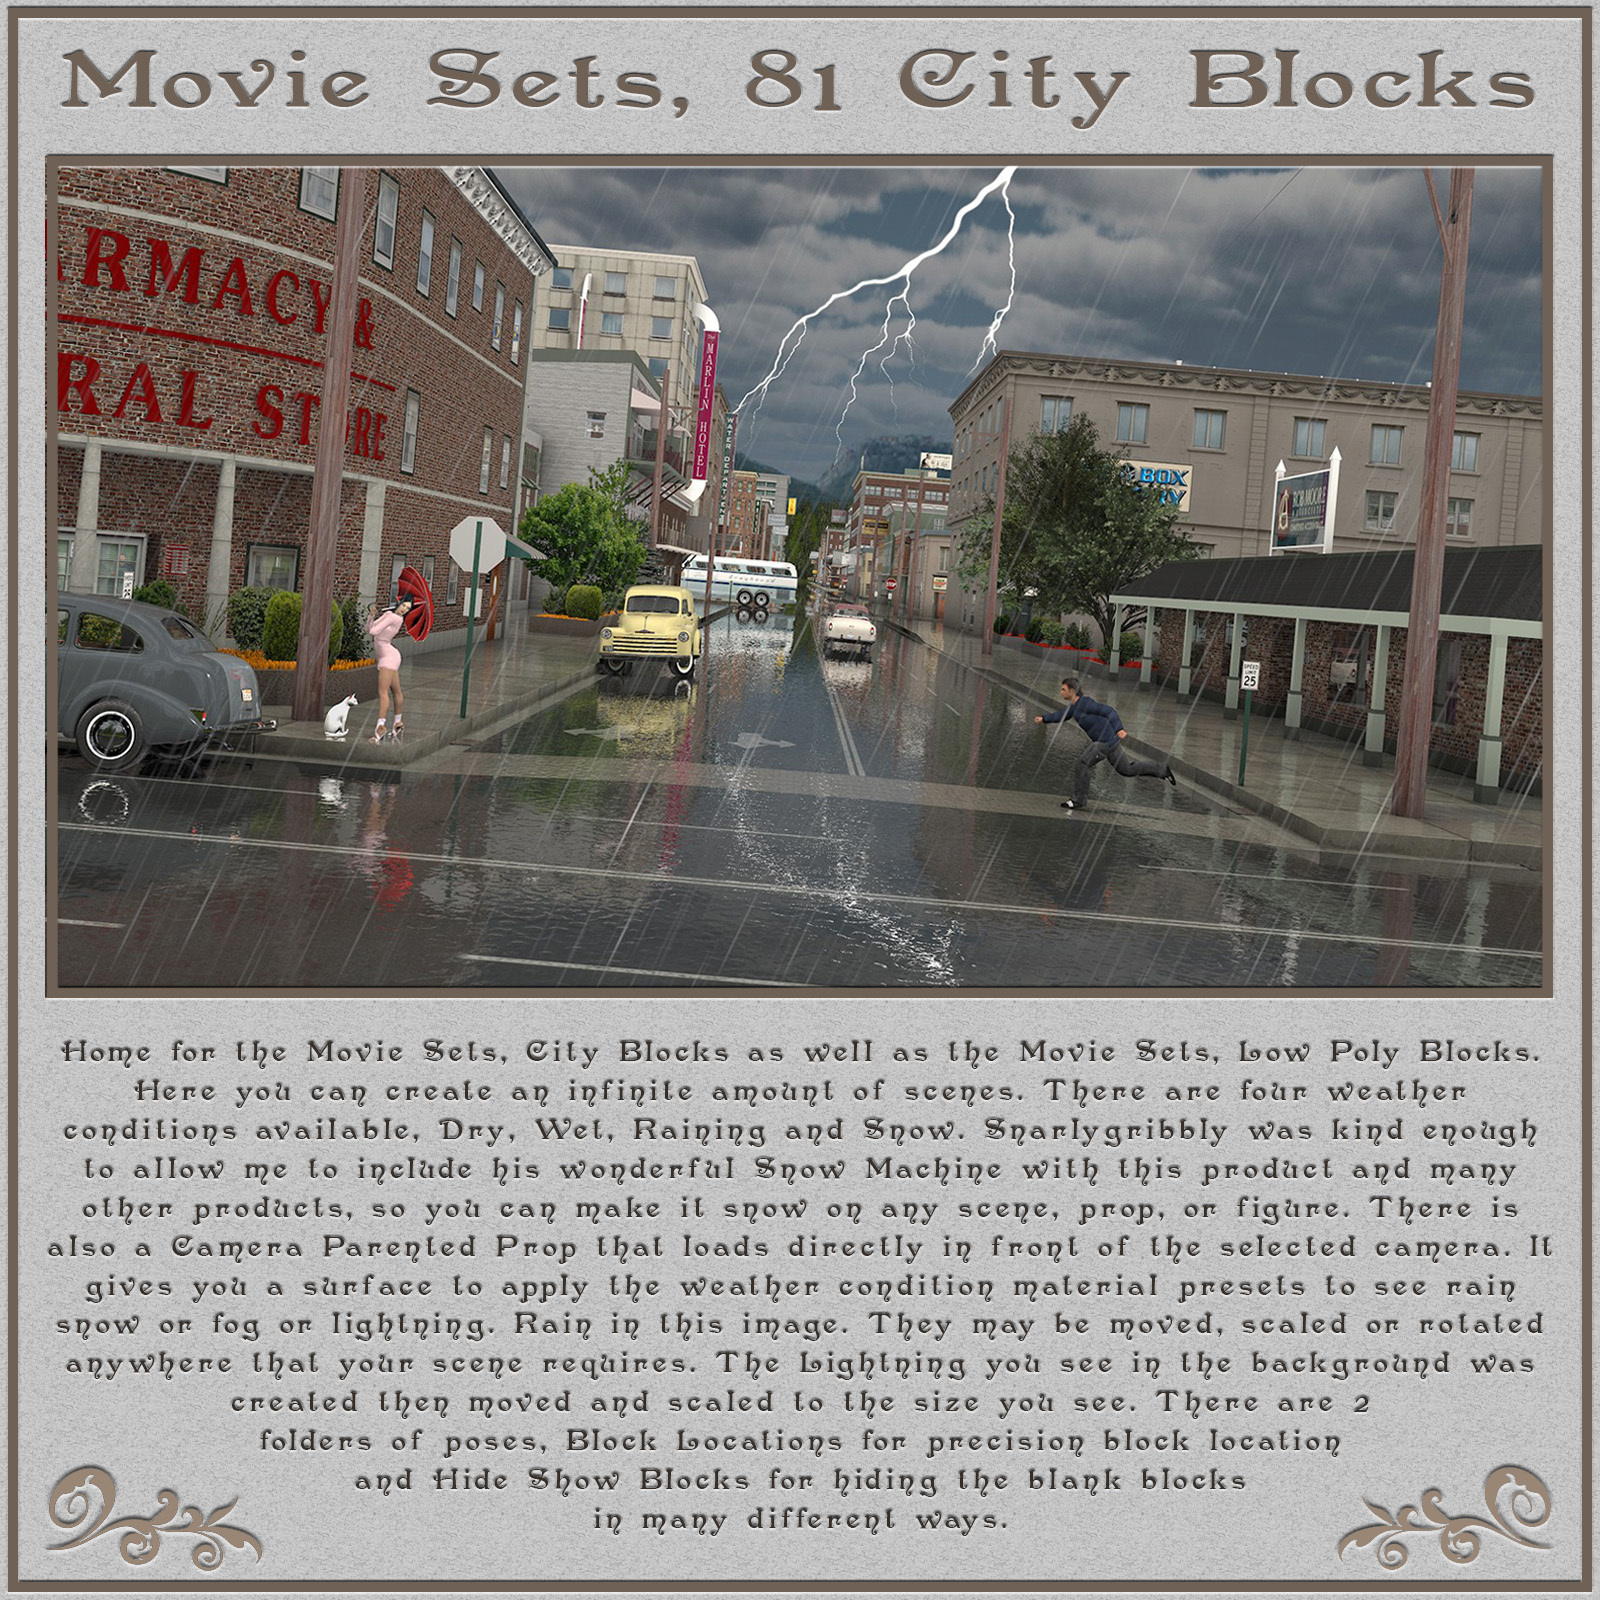 Movie Sets, 81 City Blocks